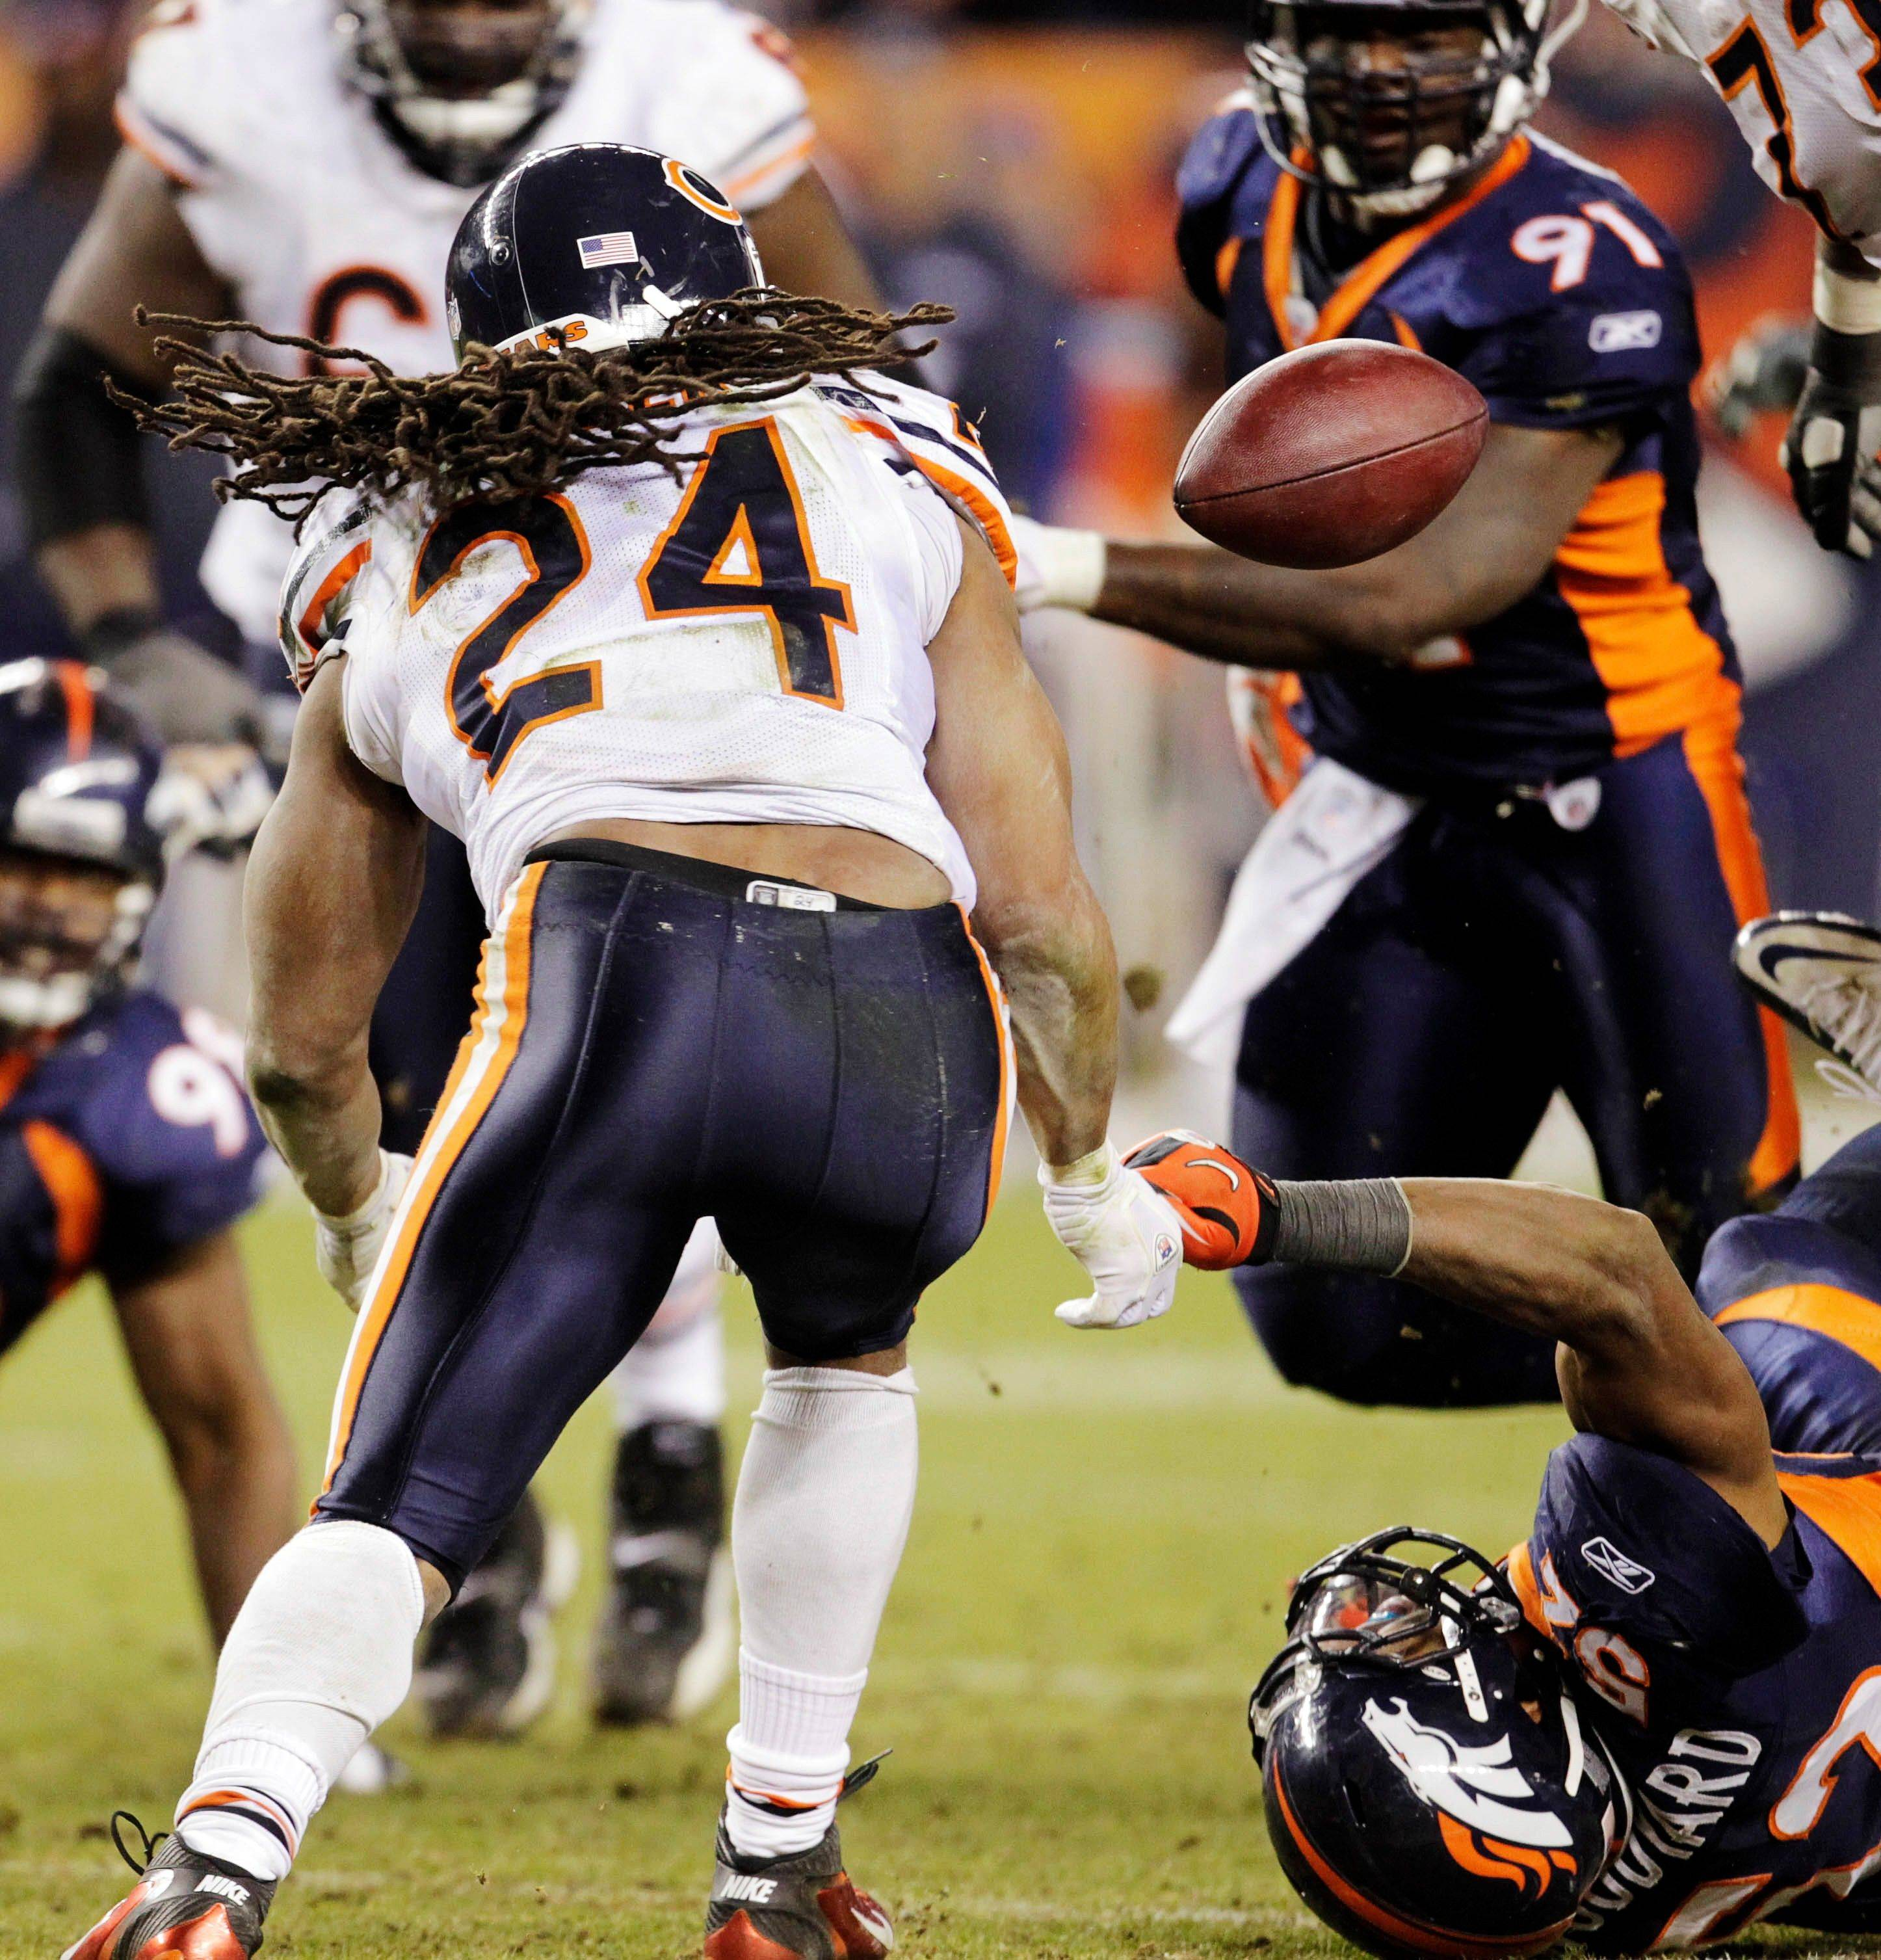 Chicago Bears running back Marion Barber (24) fumbles the ball against the Denver Broncos in overtime. Denver recovered the ball on the play. Denver won 13-10.